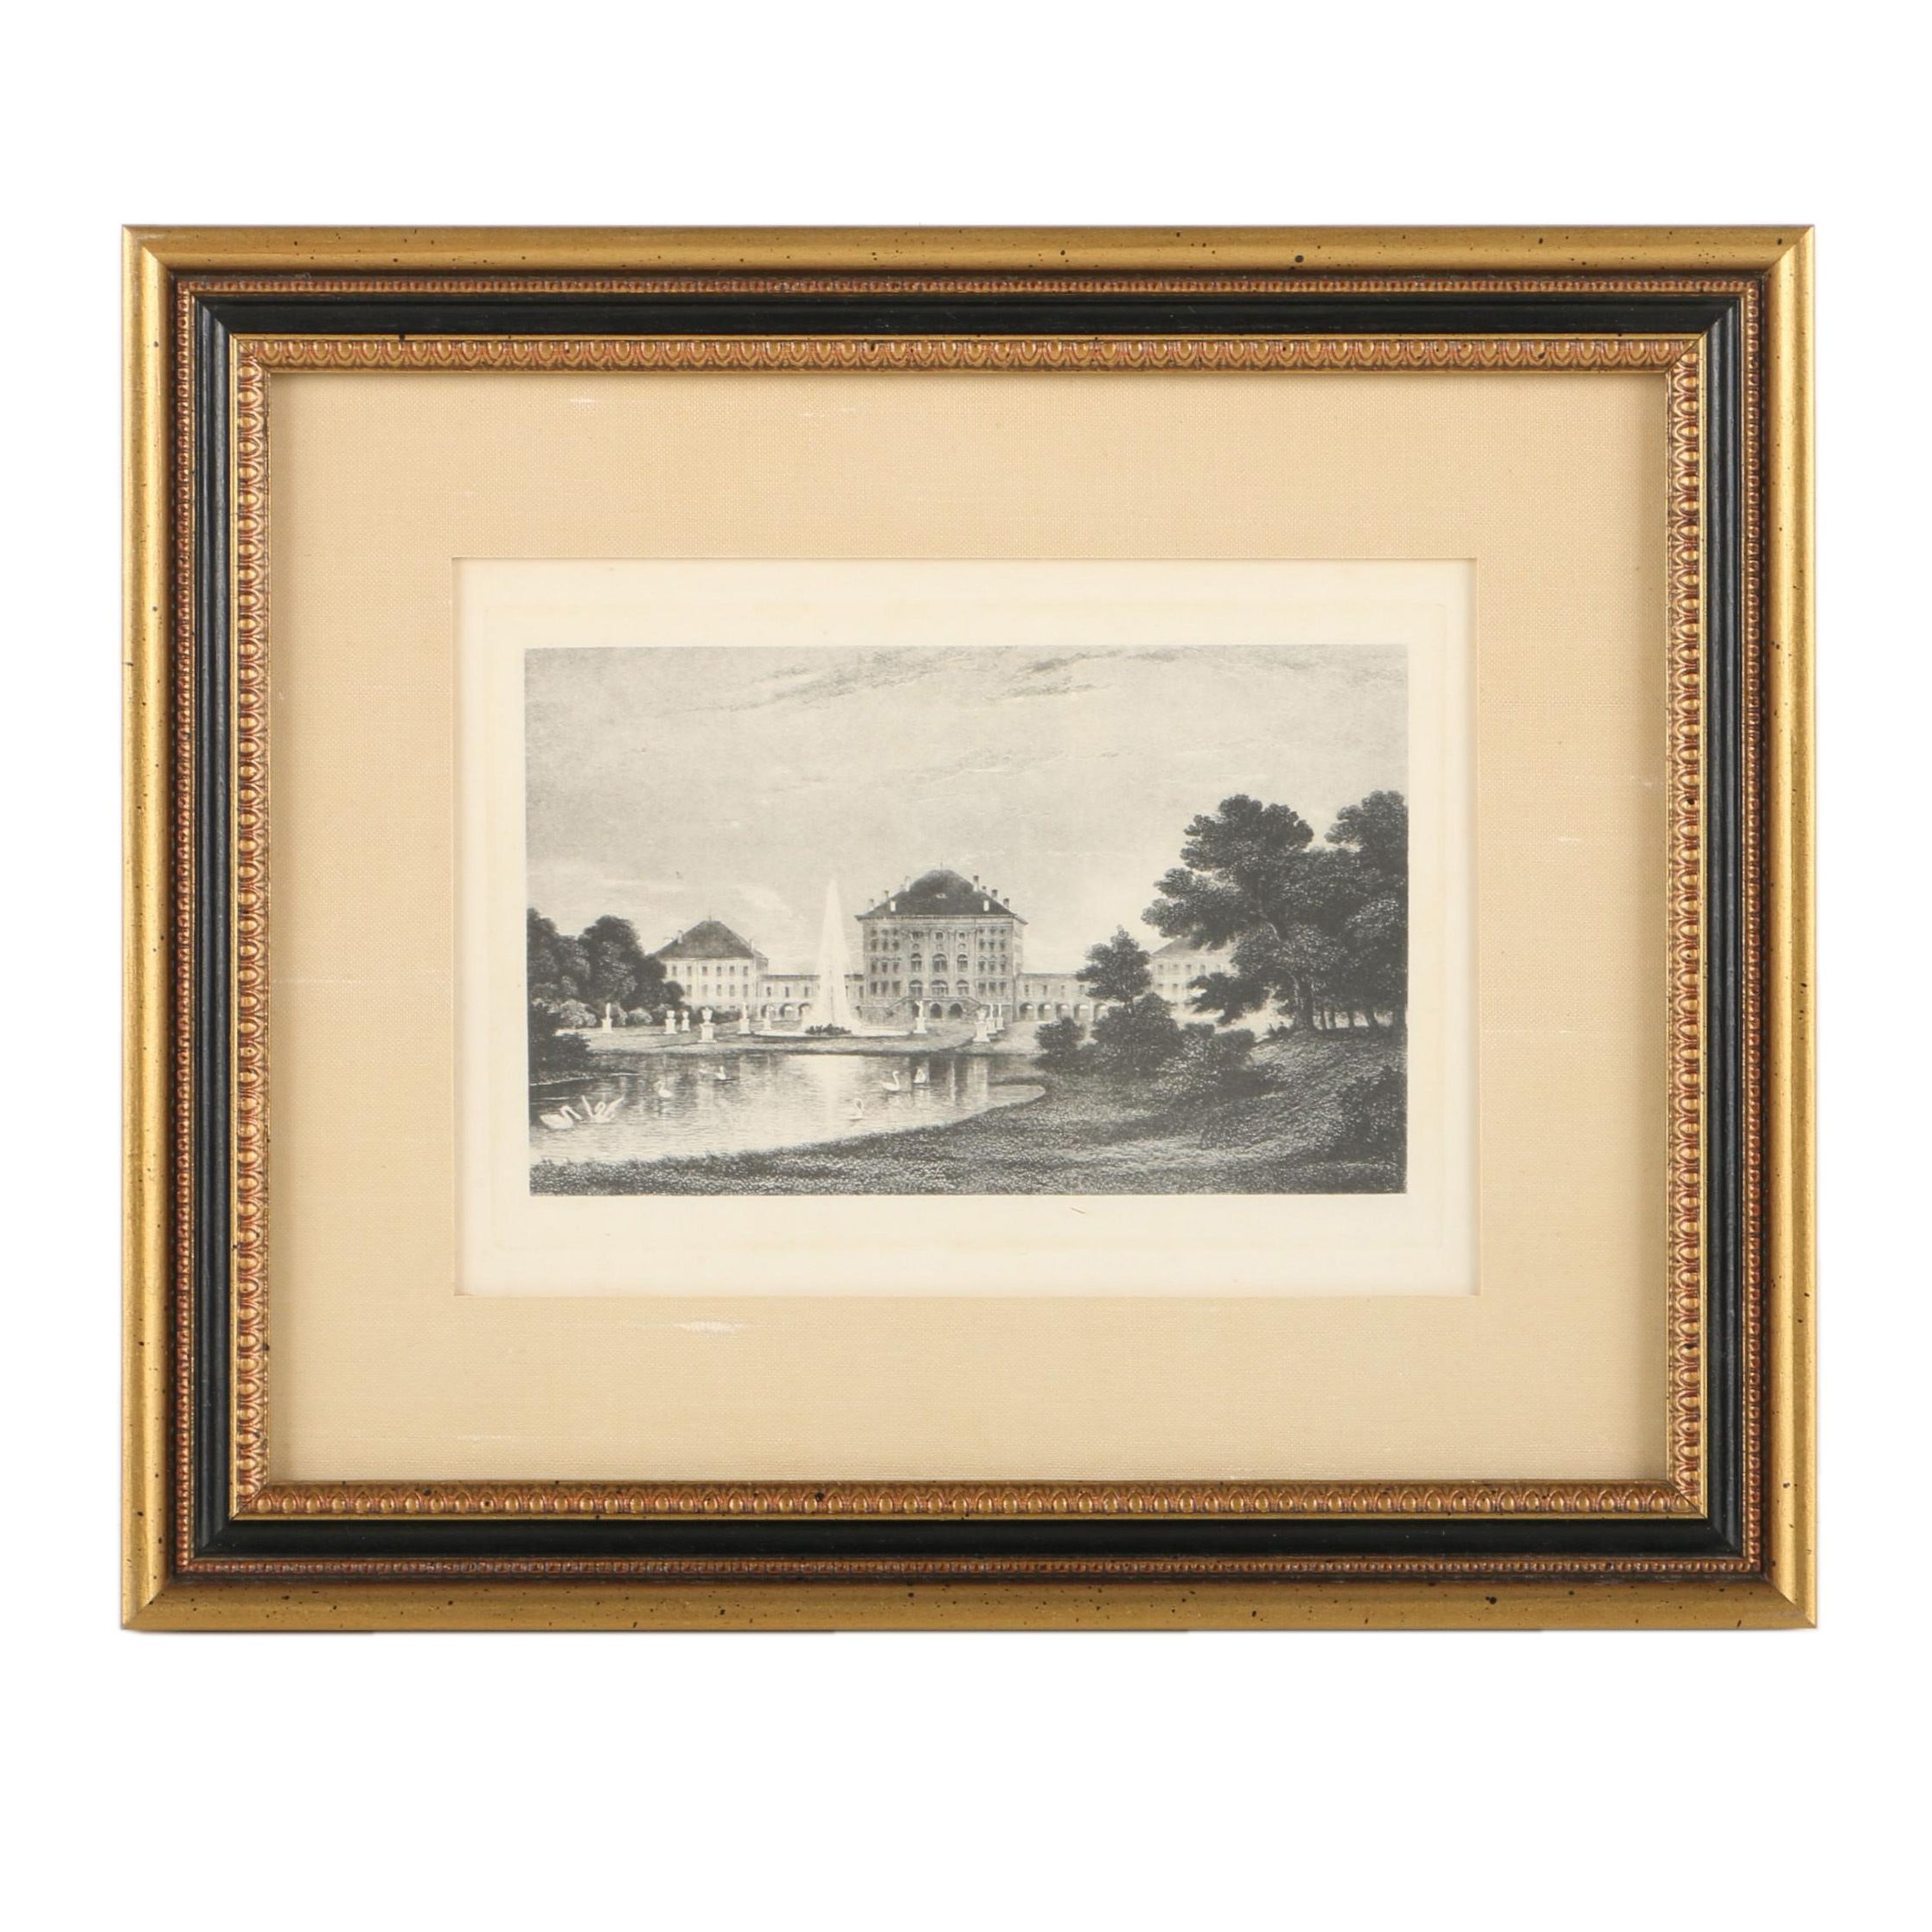 Early 20th-Century Photogravure on Paper of Large Estate with Pond